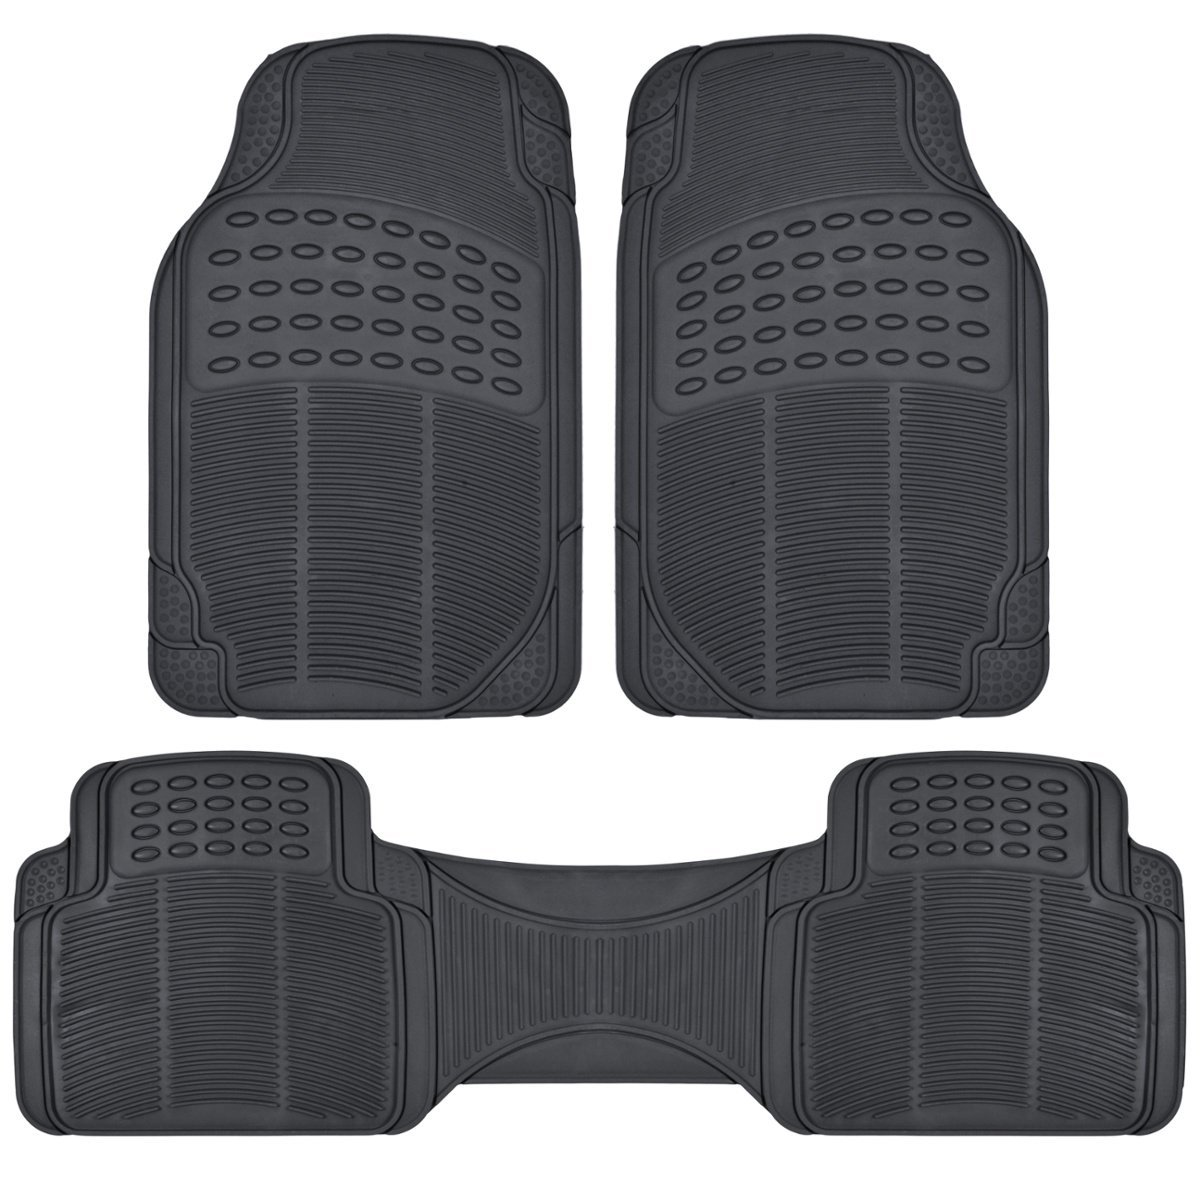 Heavy Duty PVC Classic Rubber Mats 3pcs - Black